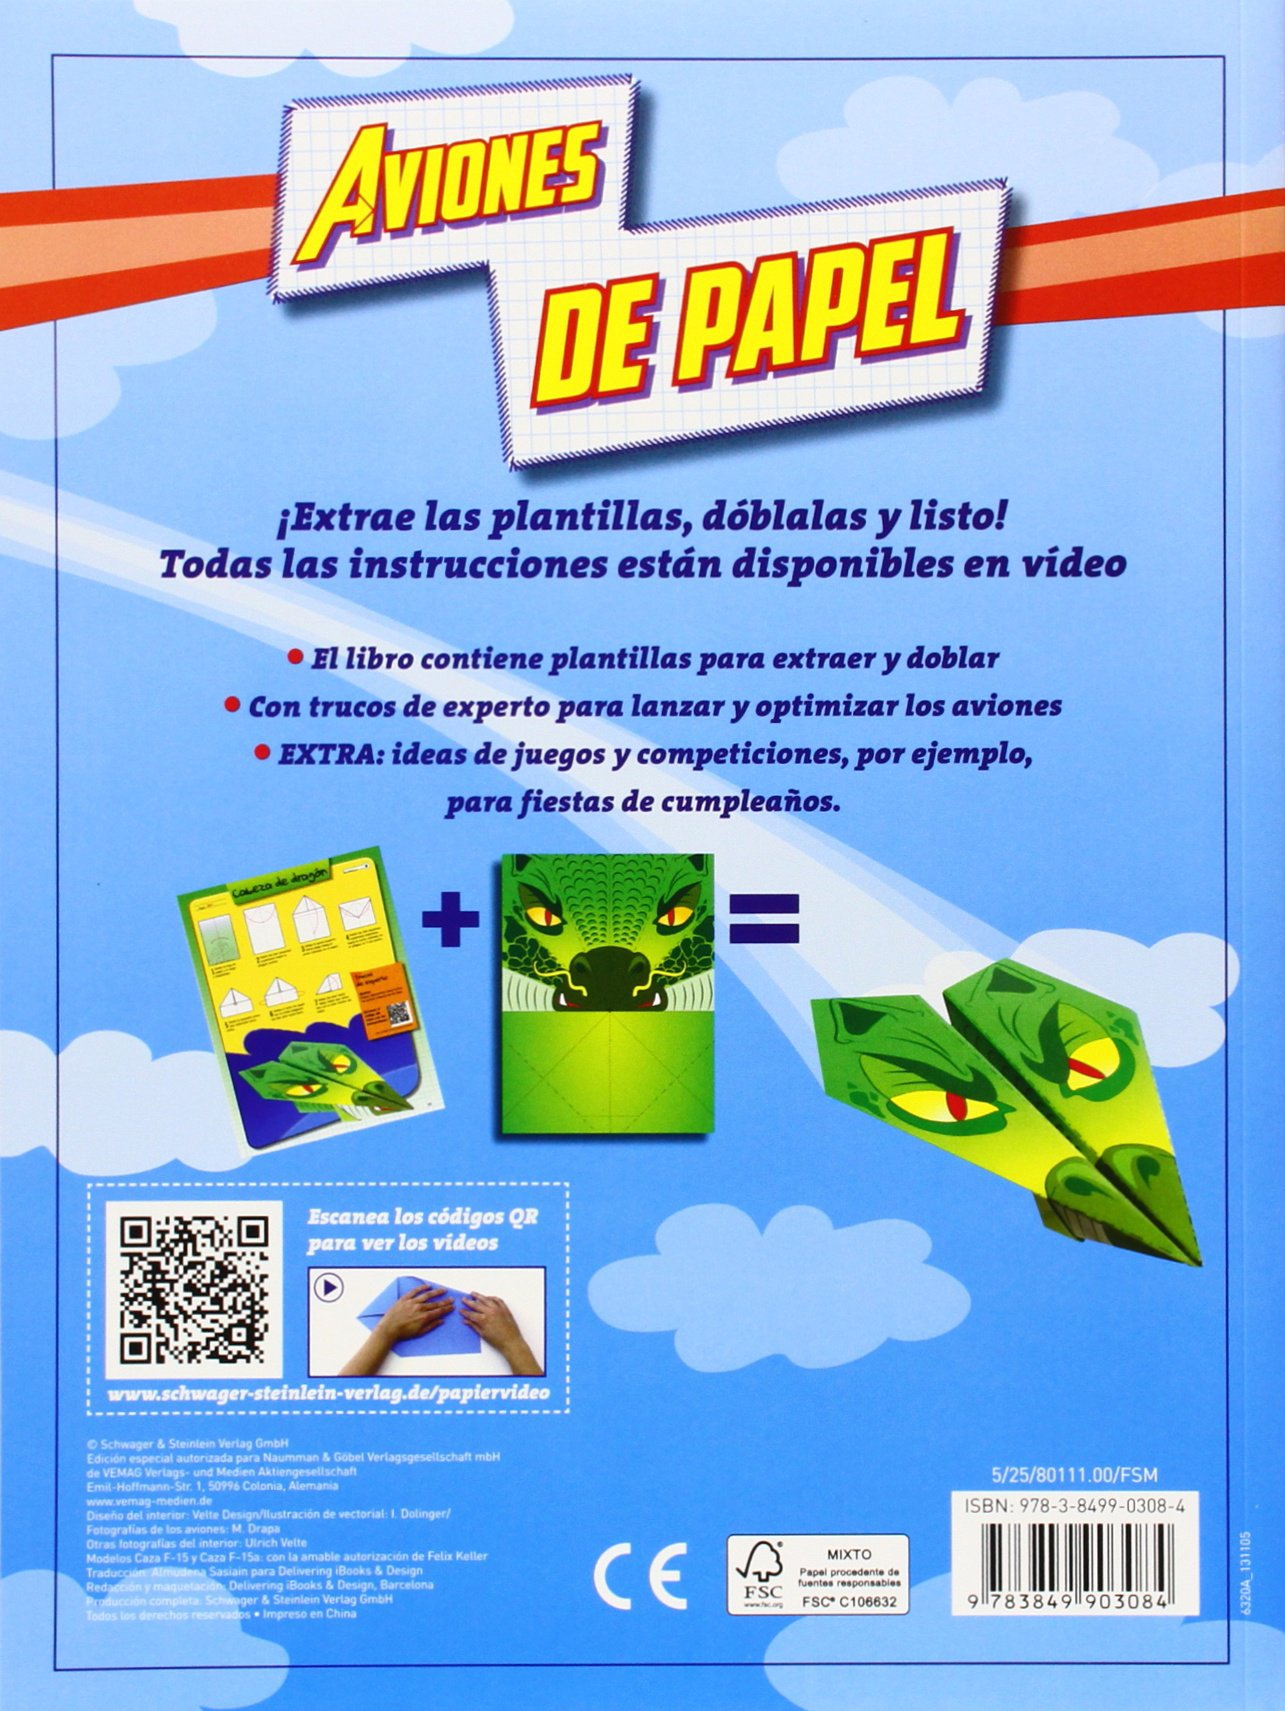 AVIONES DE PAPEL - NGV: VV.AA.: 9783849903084: Amazon.com: Books